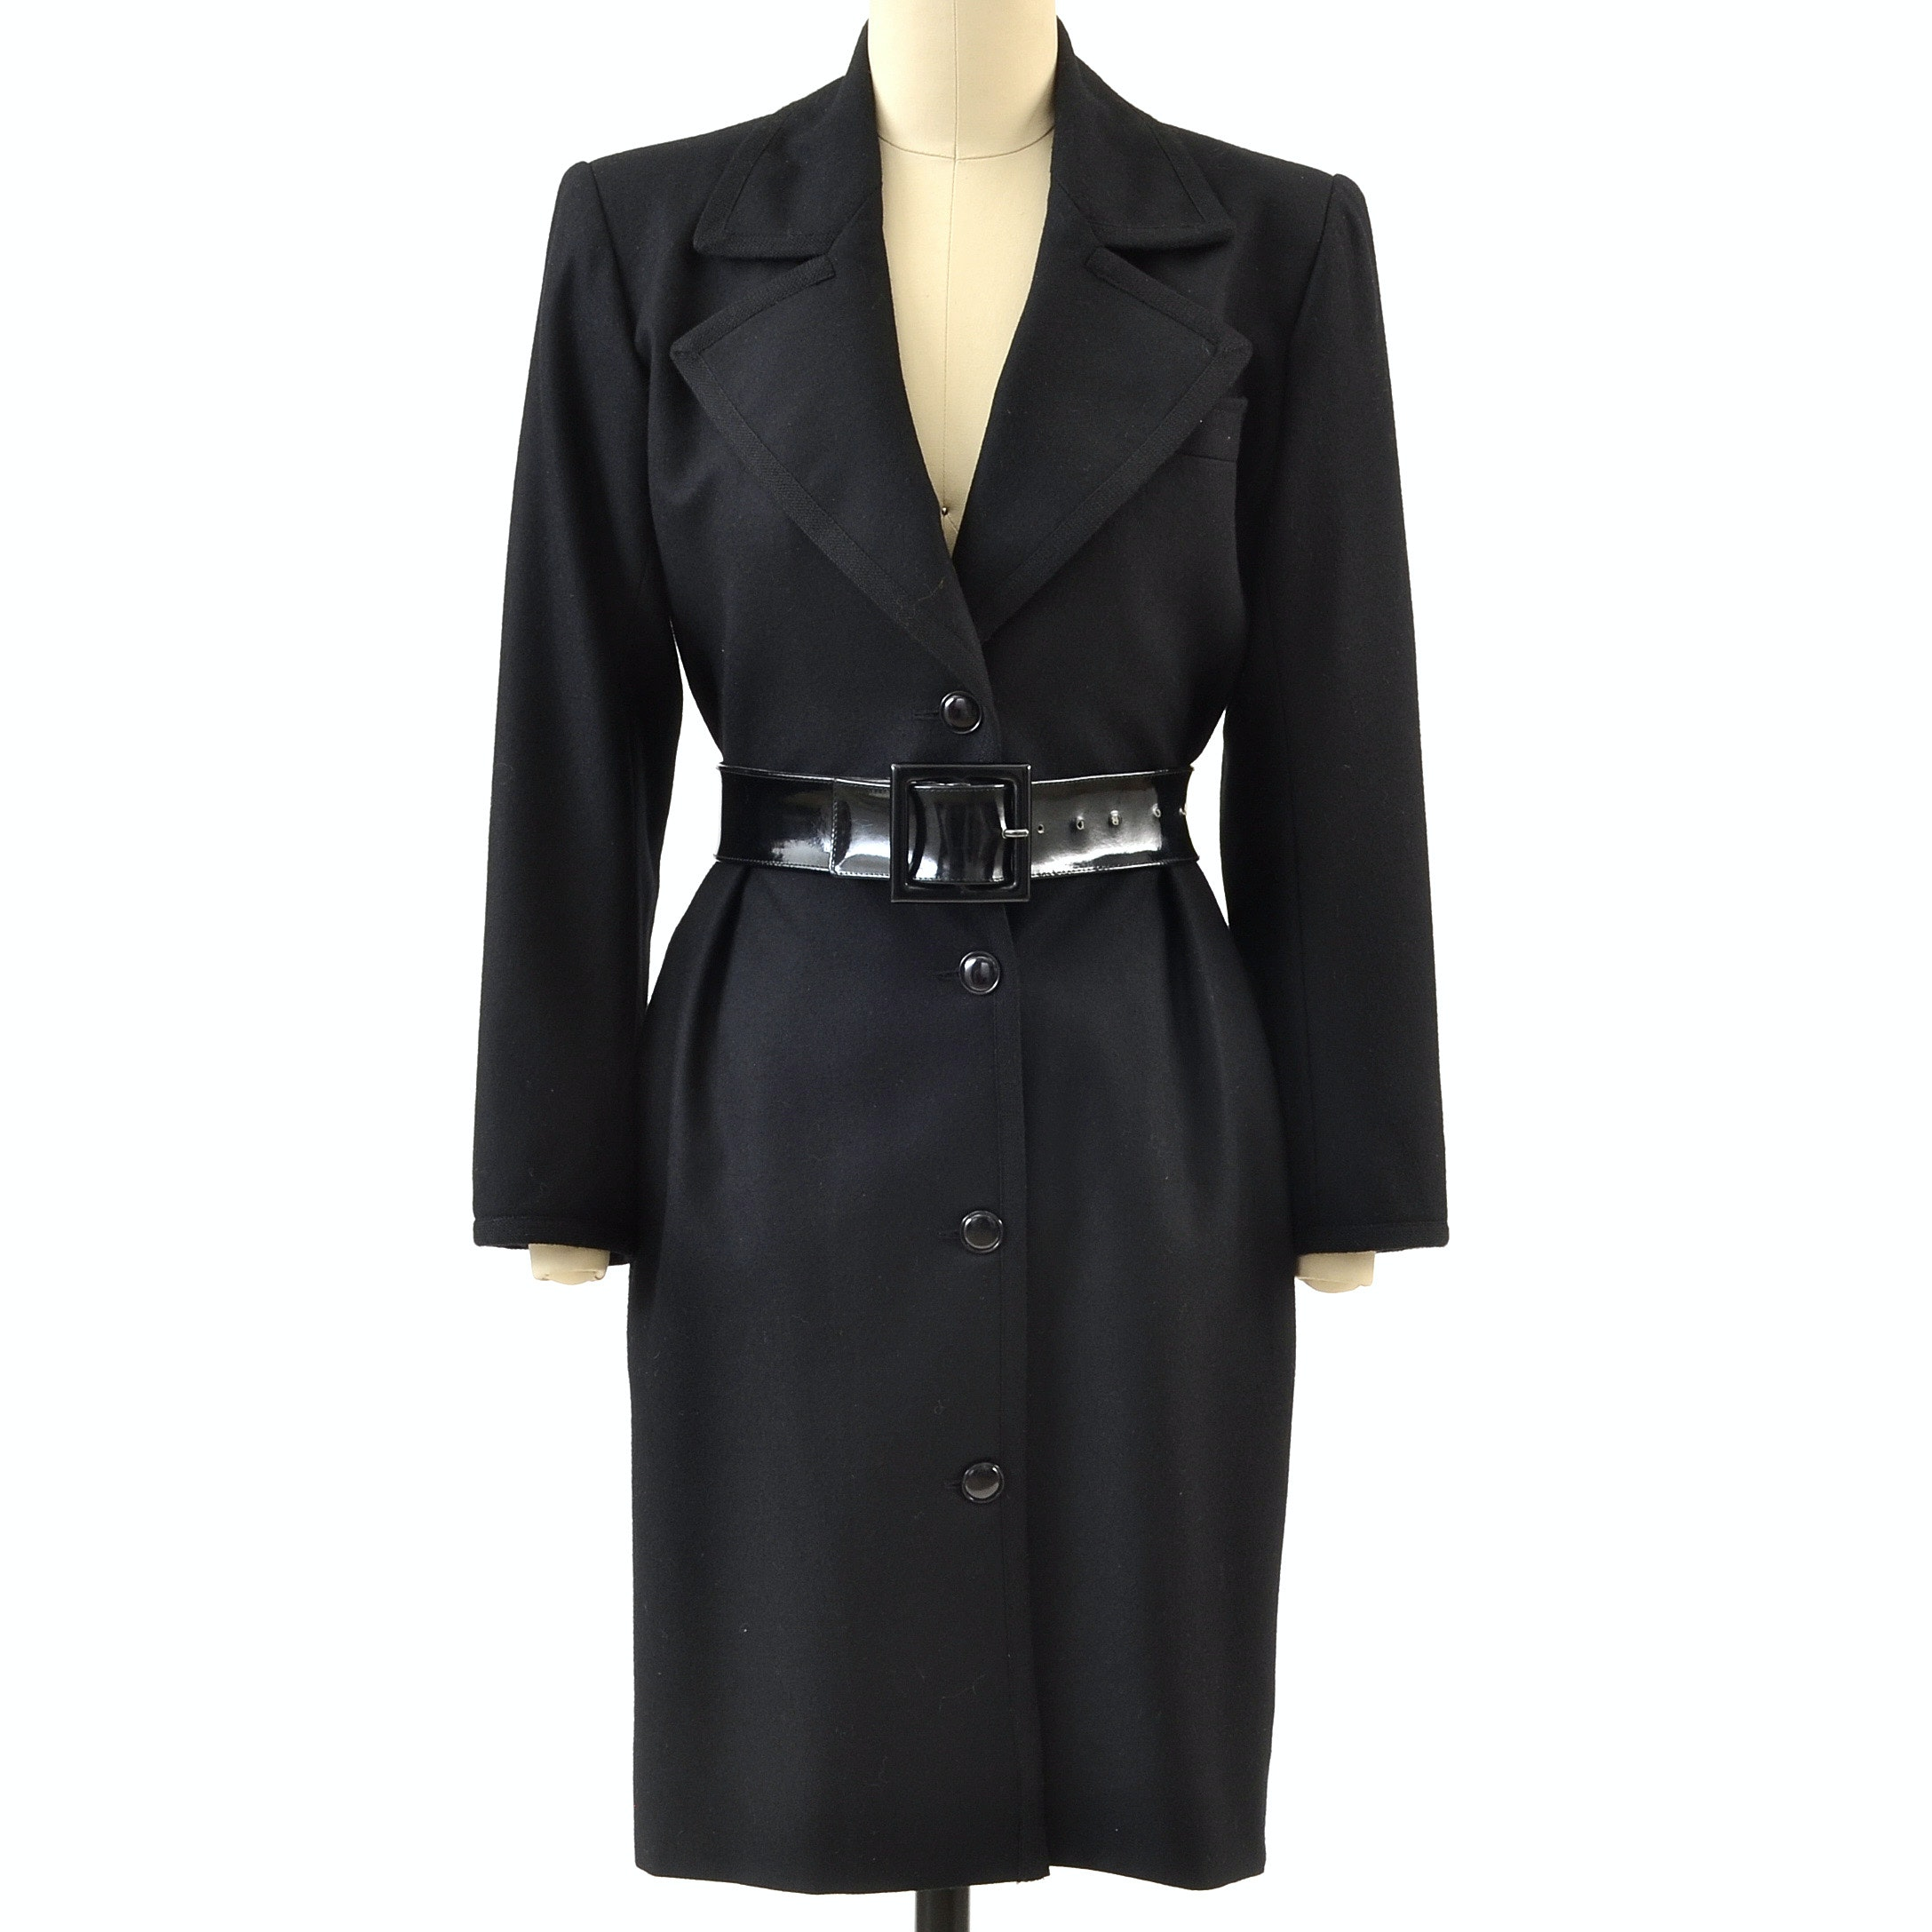 1980s Saint Laurent Rive Gauche of Paris Designer Black Cashmere Wool Dress Coat